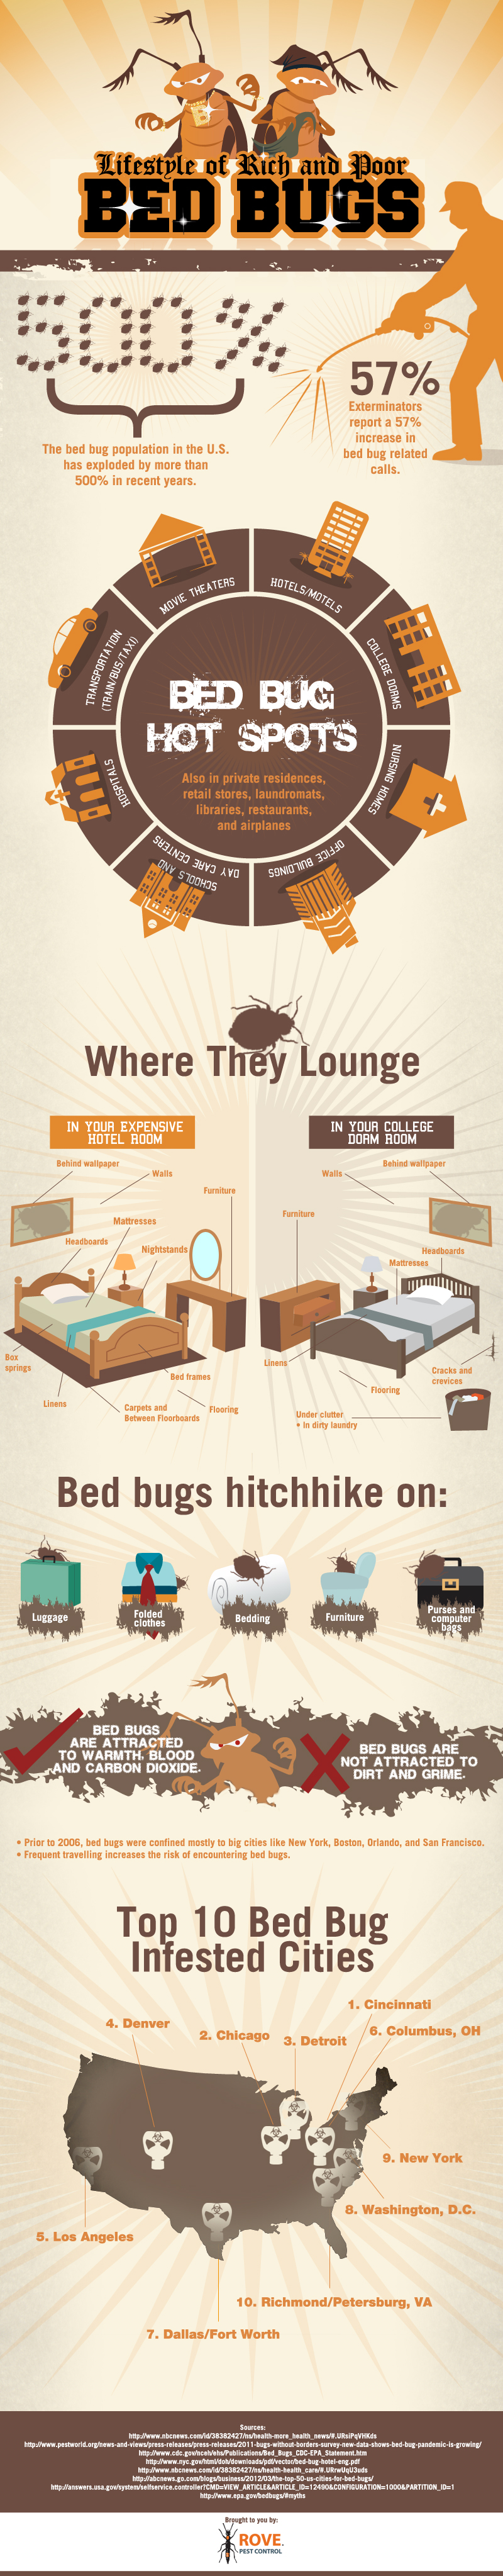 Lifestyle of Rich and Poor Bed Bugs